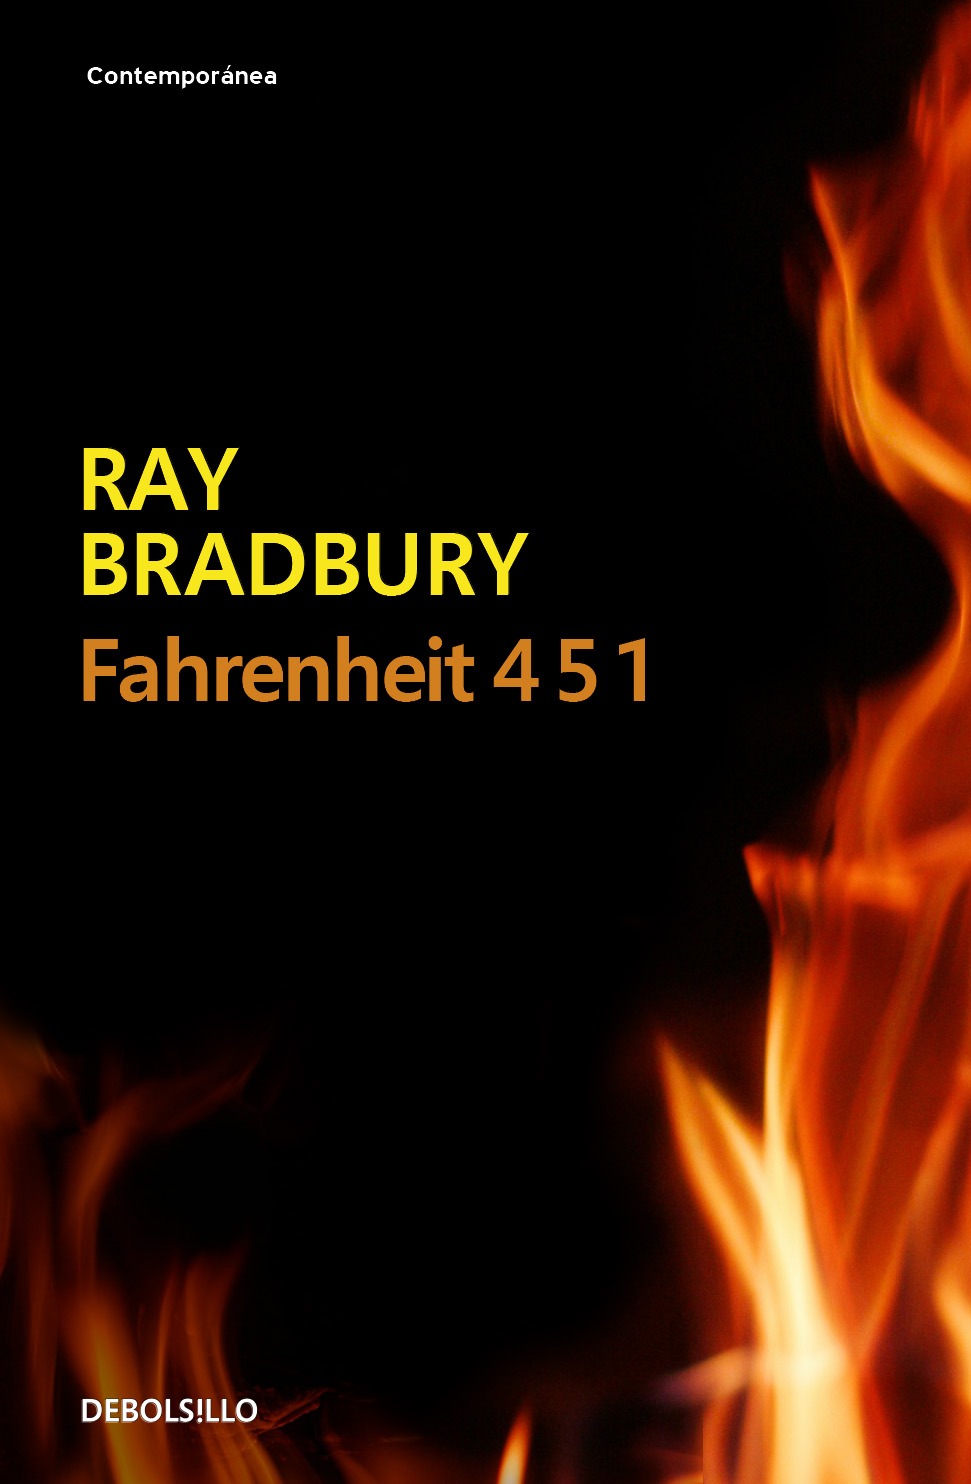 the futuristic life in the novel fahrenheit 451 by ray bradbury An excerpt from the interactive tv sequence in francois truffault's fahrenheit 451 (1966), based on the novel by ray bradbury.